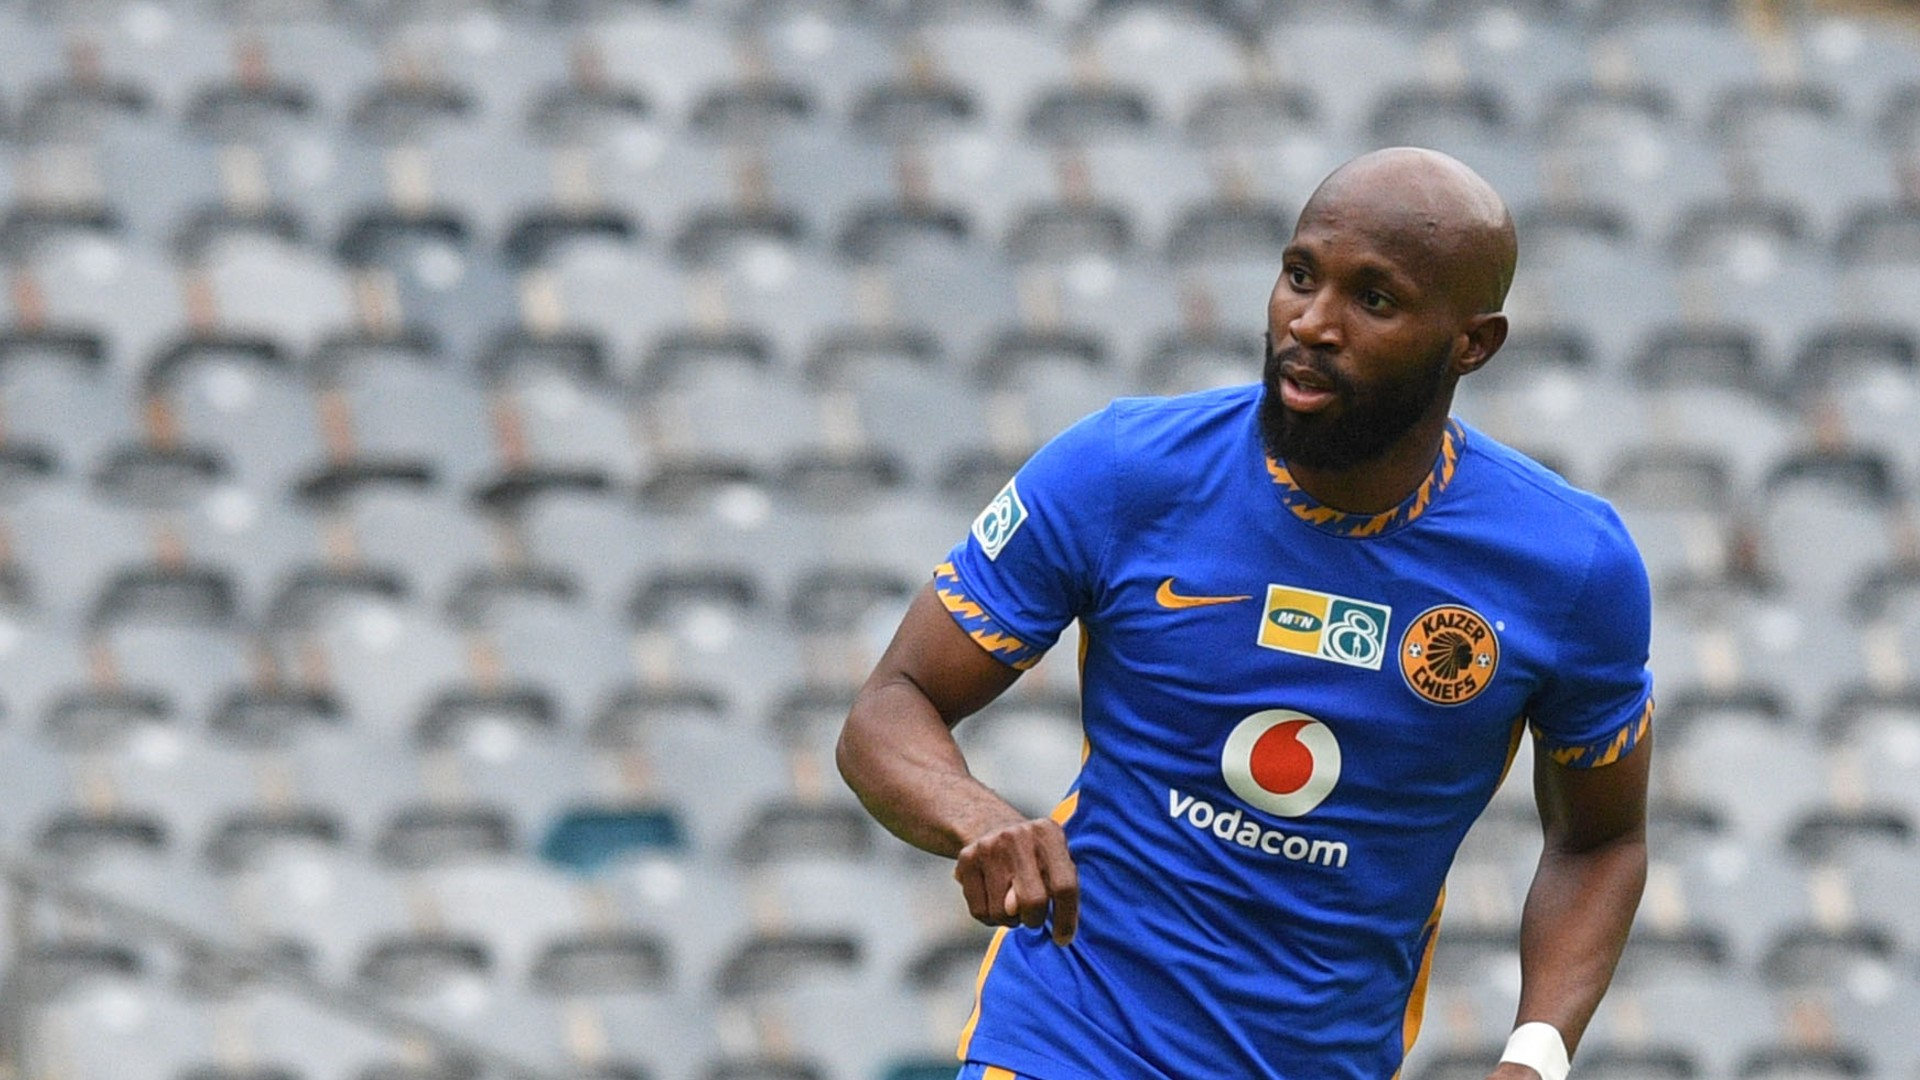 Kaizer Chiefs provide update on injured Mphahlele ahead of PWD Bamenda clash